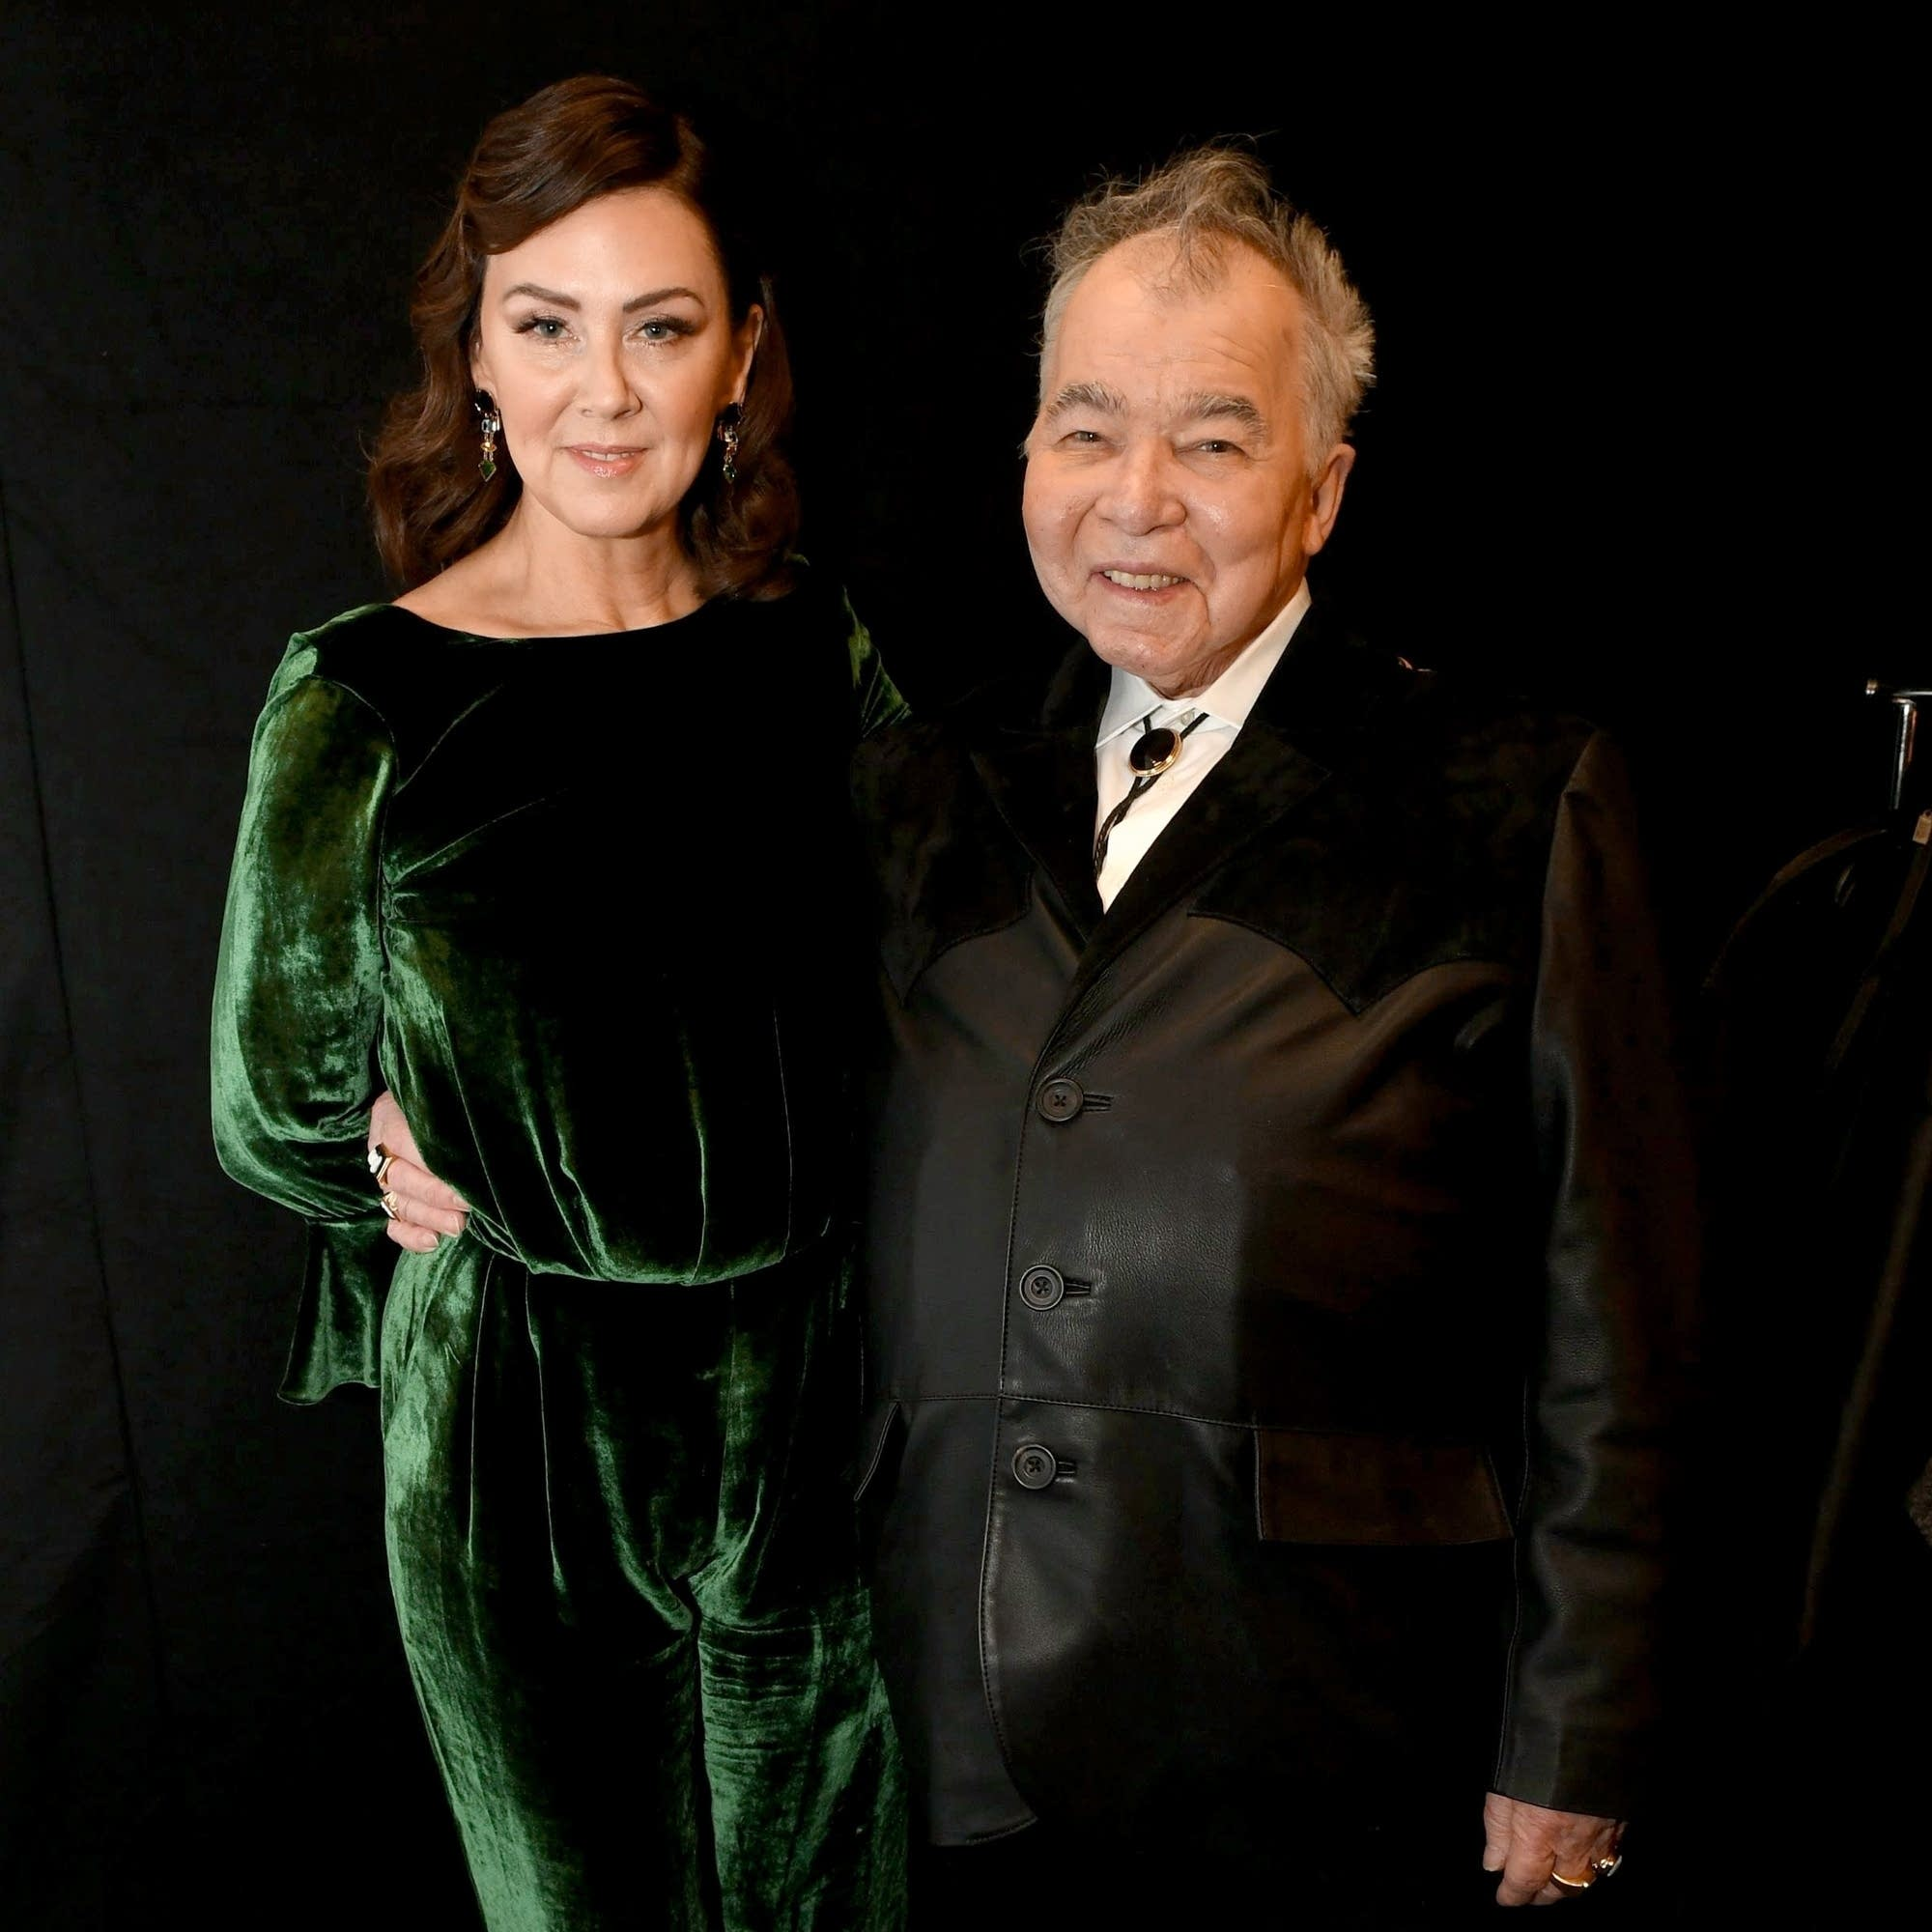 Fiona Whelan Prine and John Prine at the Grammys, 2020.